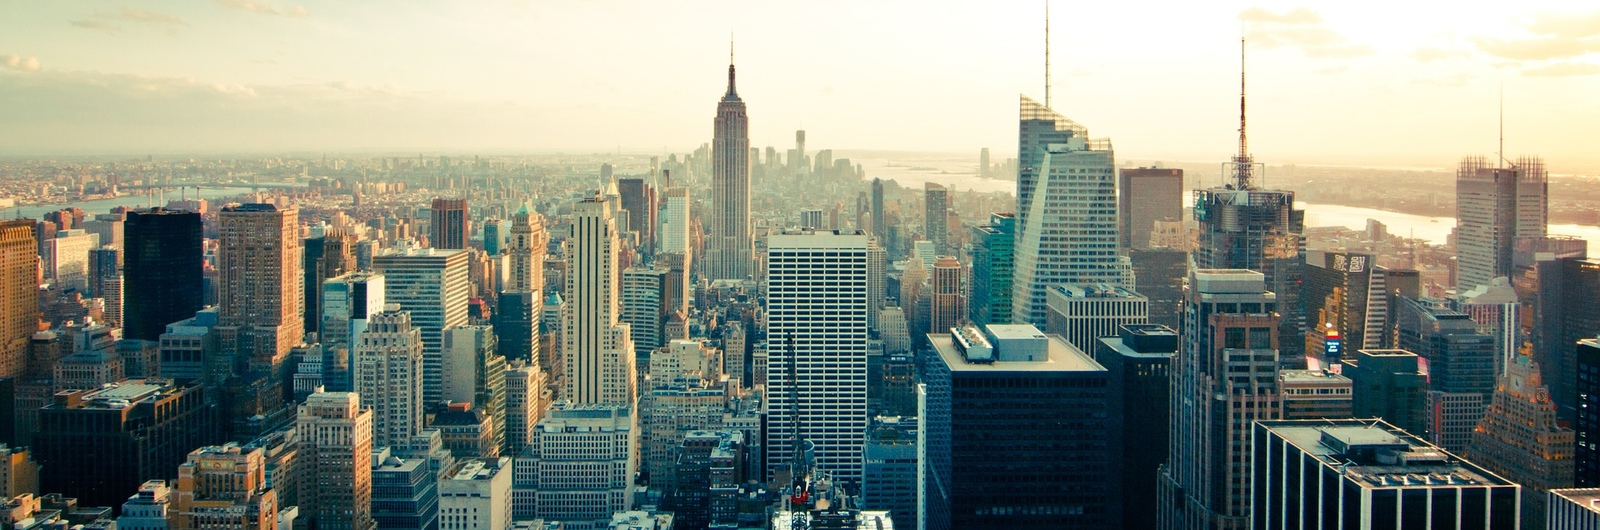 manhattan city header 1